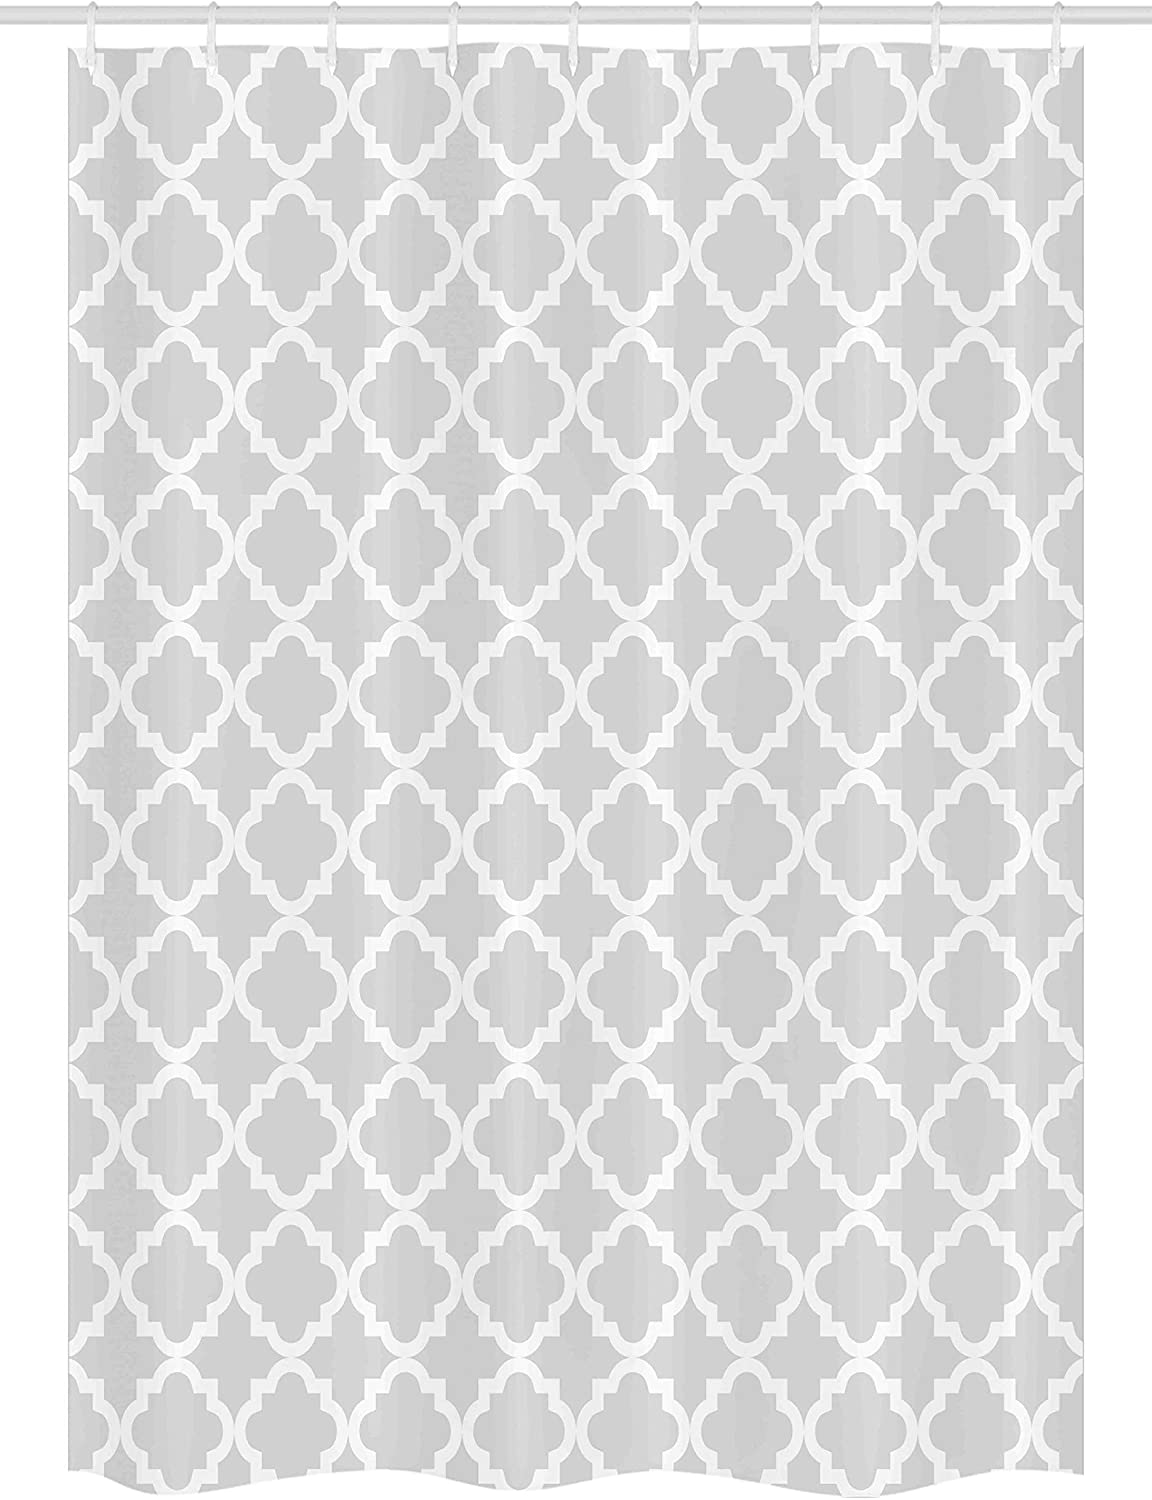 Antique Pattern Geometry Curves Ogee Minimalistic Design Illustration Ambesonne Quatrefoil Stall Shower Curtain 36 W x 72 L inches Fabric Bathroom Decor Set with Hooks Light Grey White